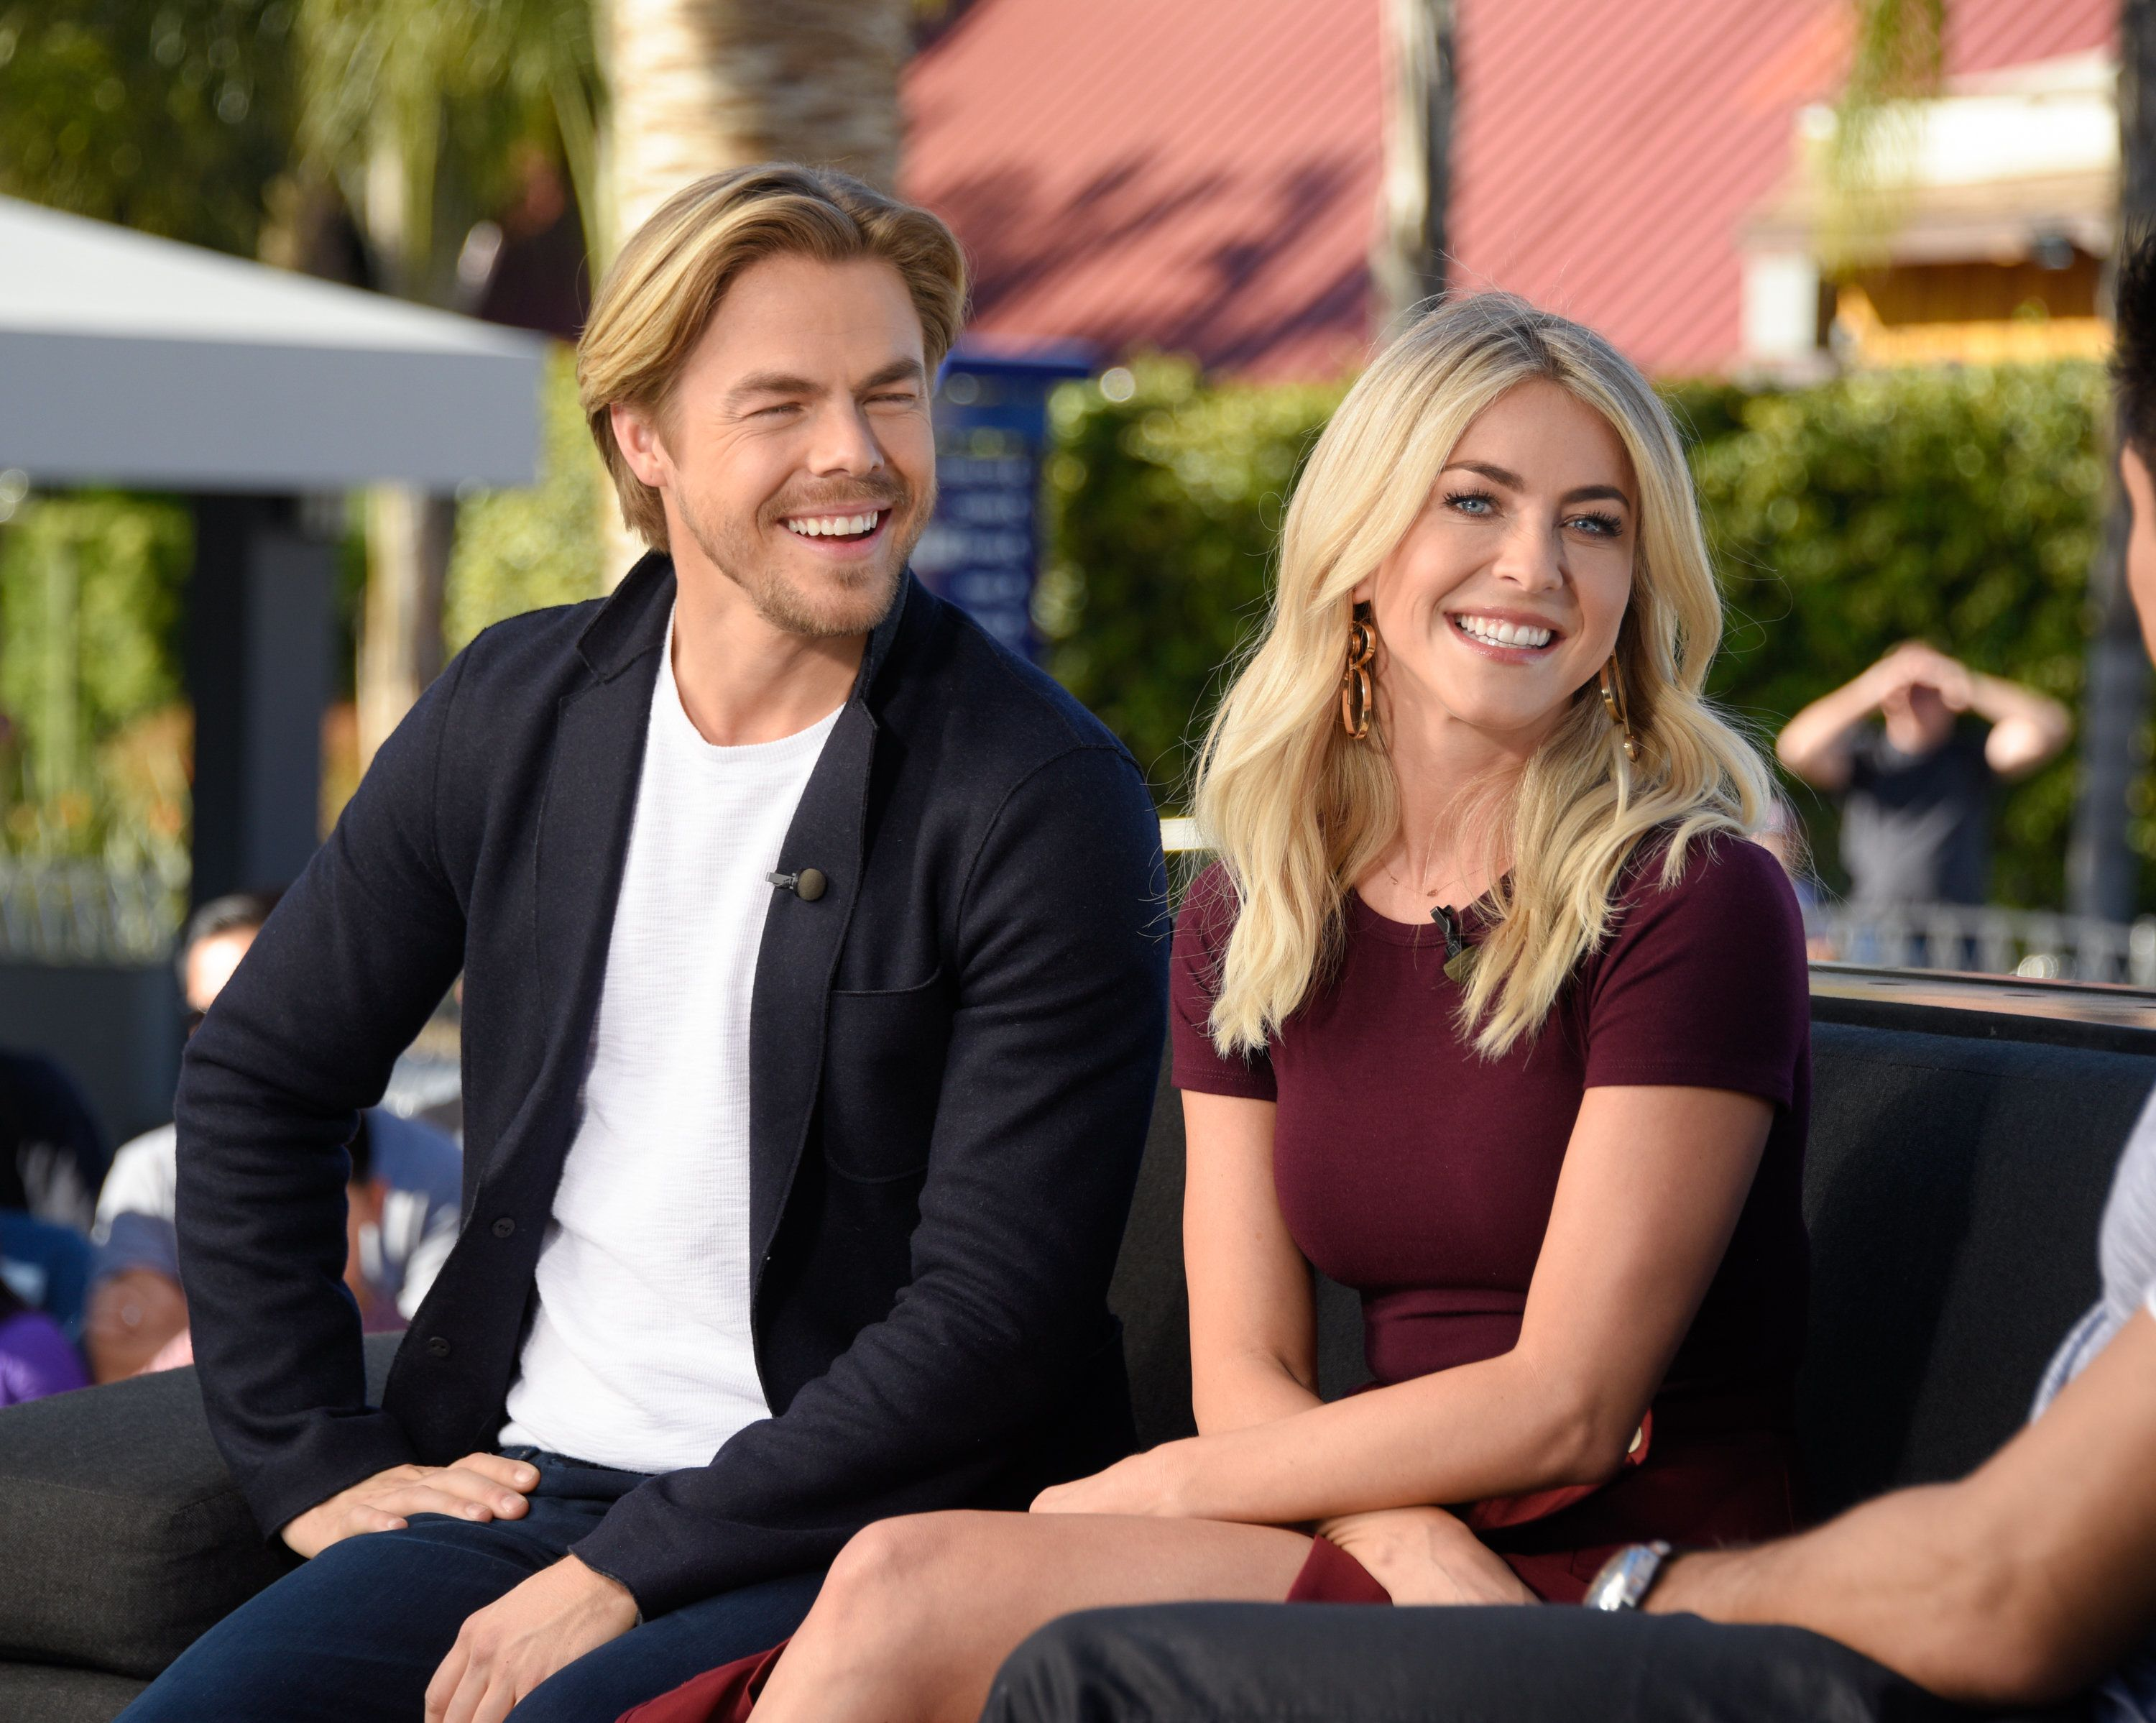 UNIVERSAL CITY, CA - MARCH 07:  Derek Hough (L) and Julianne Hough visit 'Extra' at Universal Studios Hollywood on March 7, 2017 in Universal City, California.  (Photo by Noel Vasquez/Getty Images)